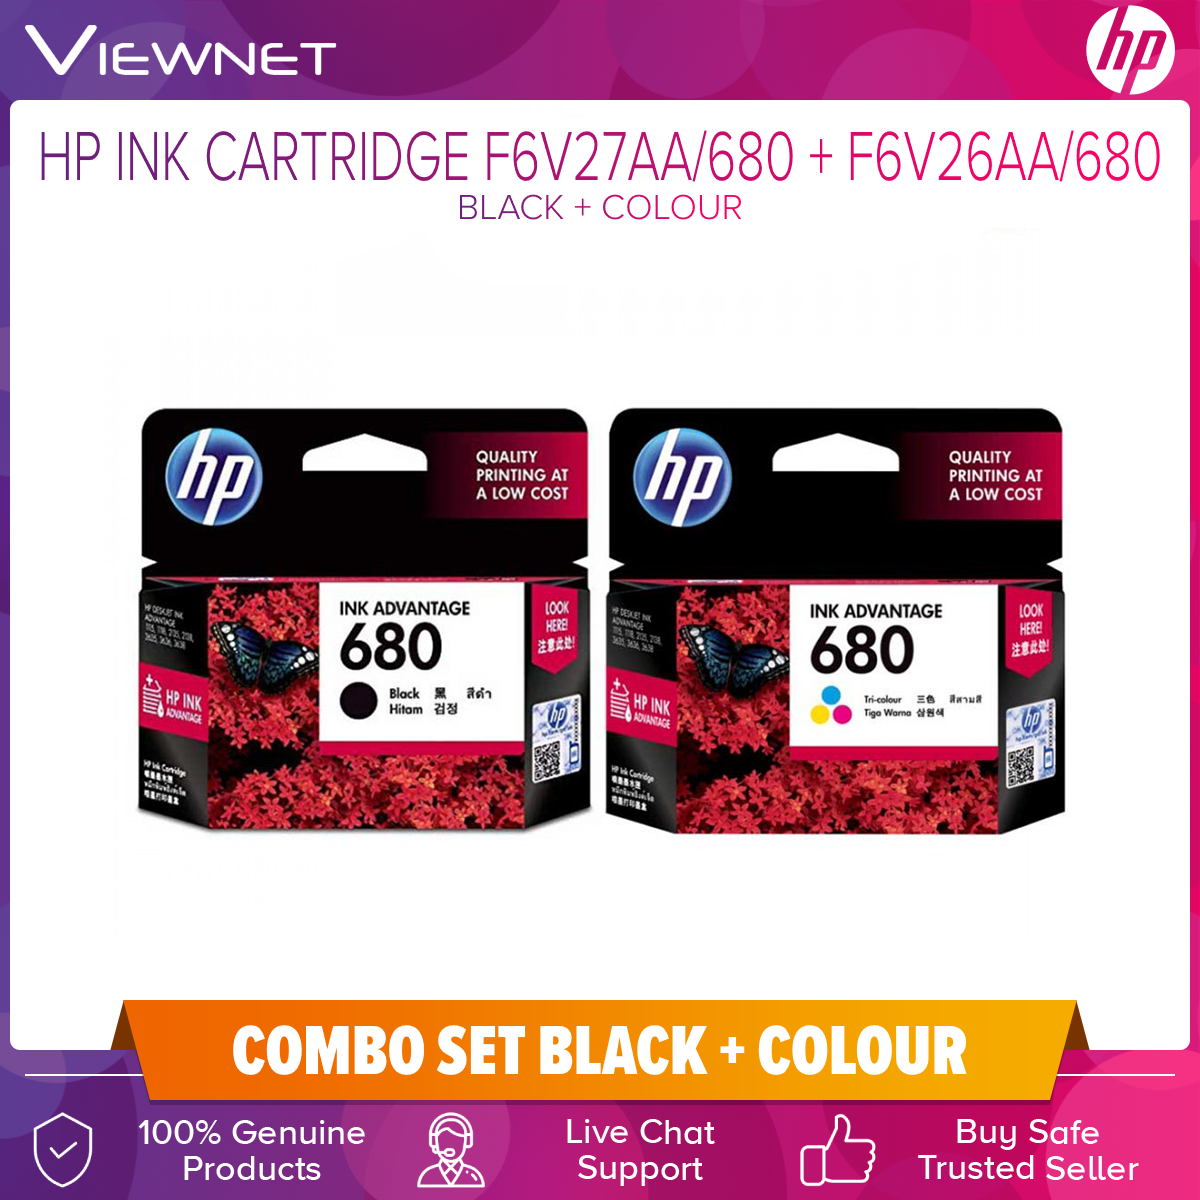 HP 680 Tri-color (F6V26AA/680) / Black (F6V27AA/680) Original Ink Advantage Cartridge